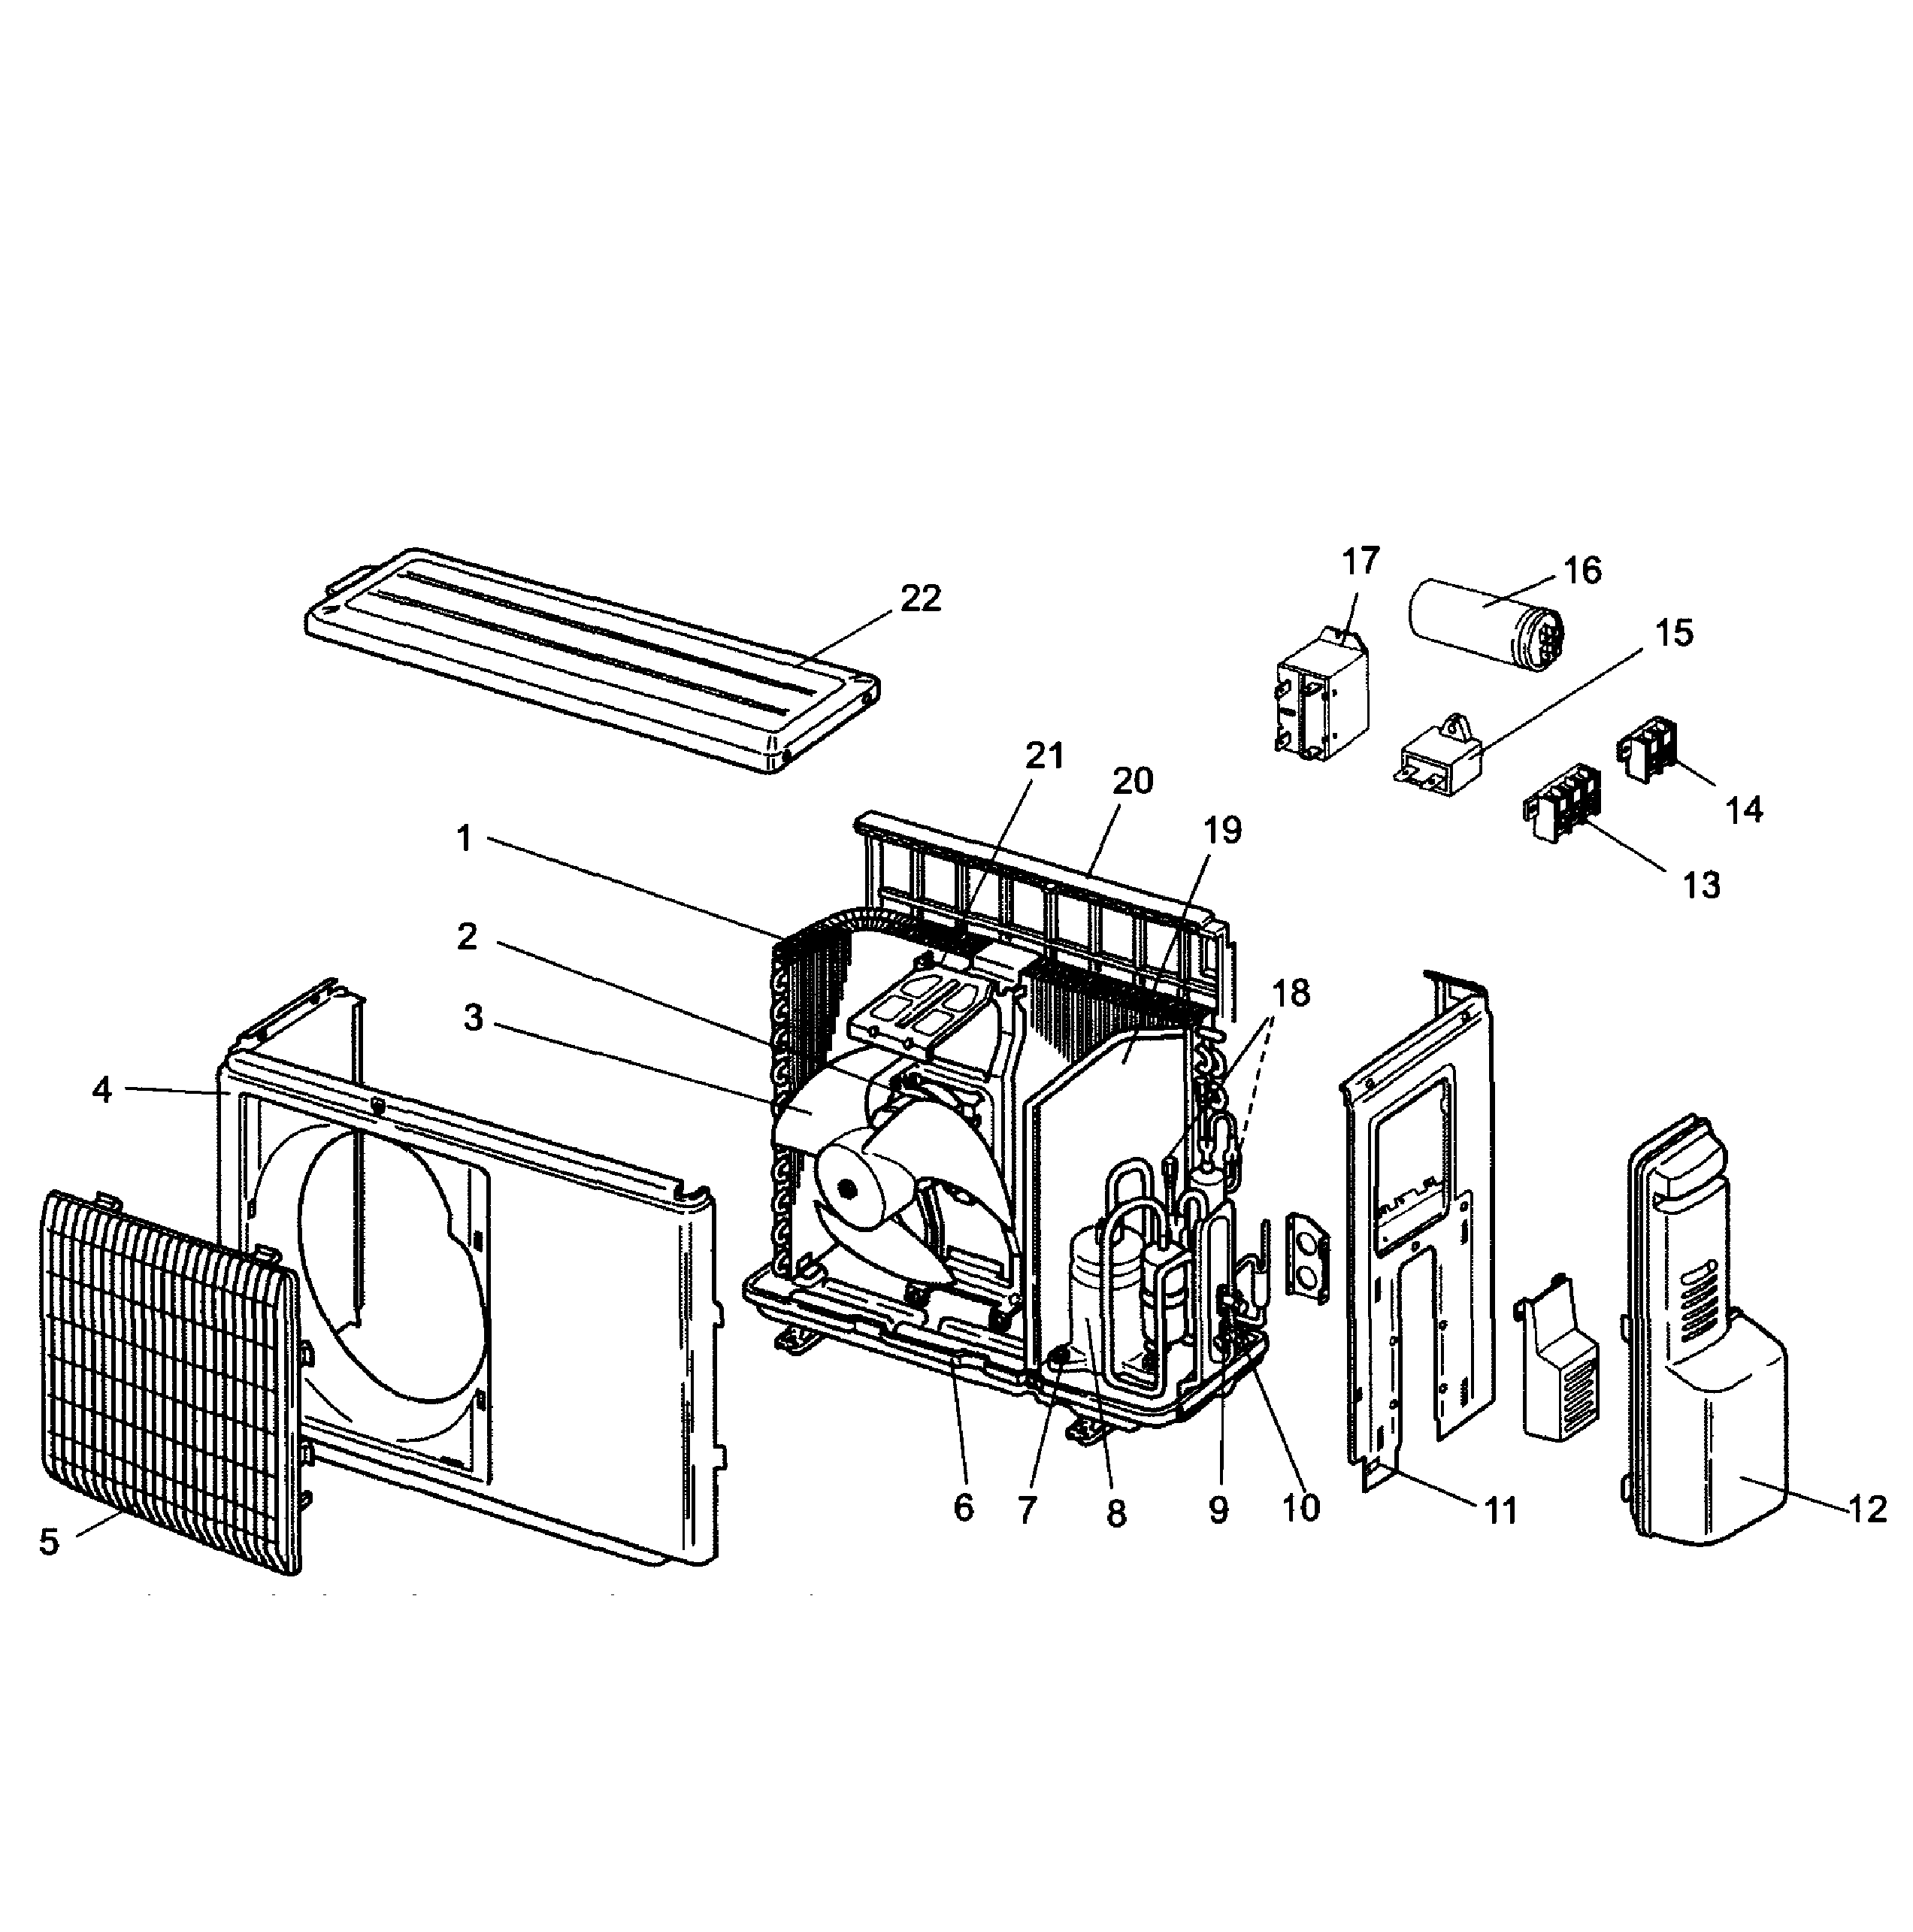 outdoor unit diagram and parts list for mitsubishi airconditioner